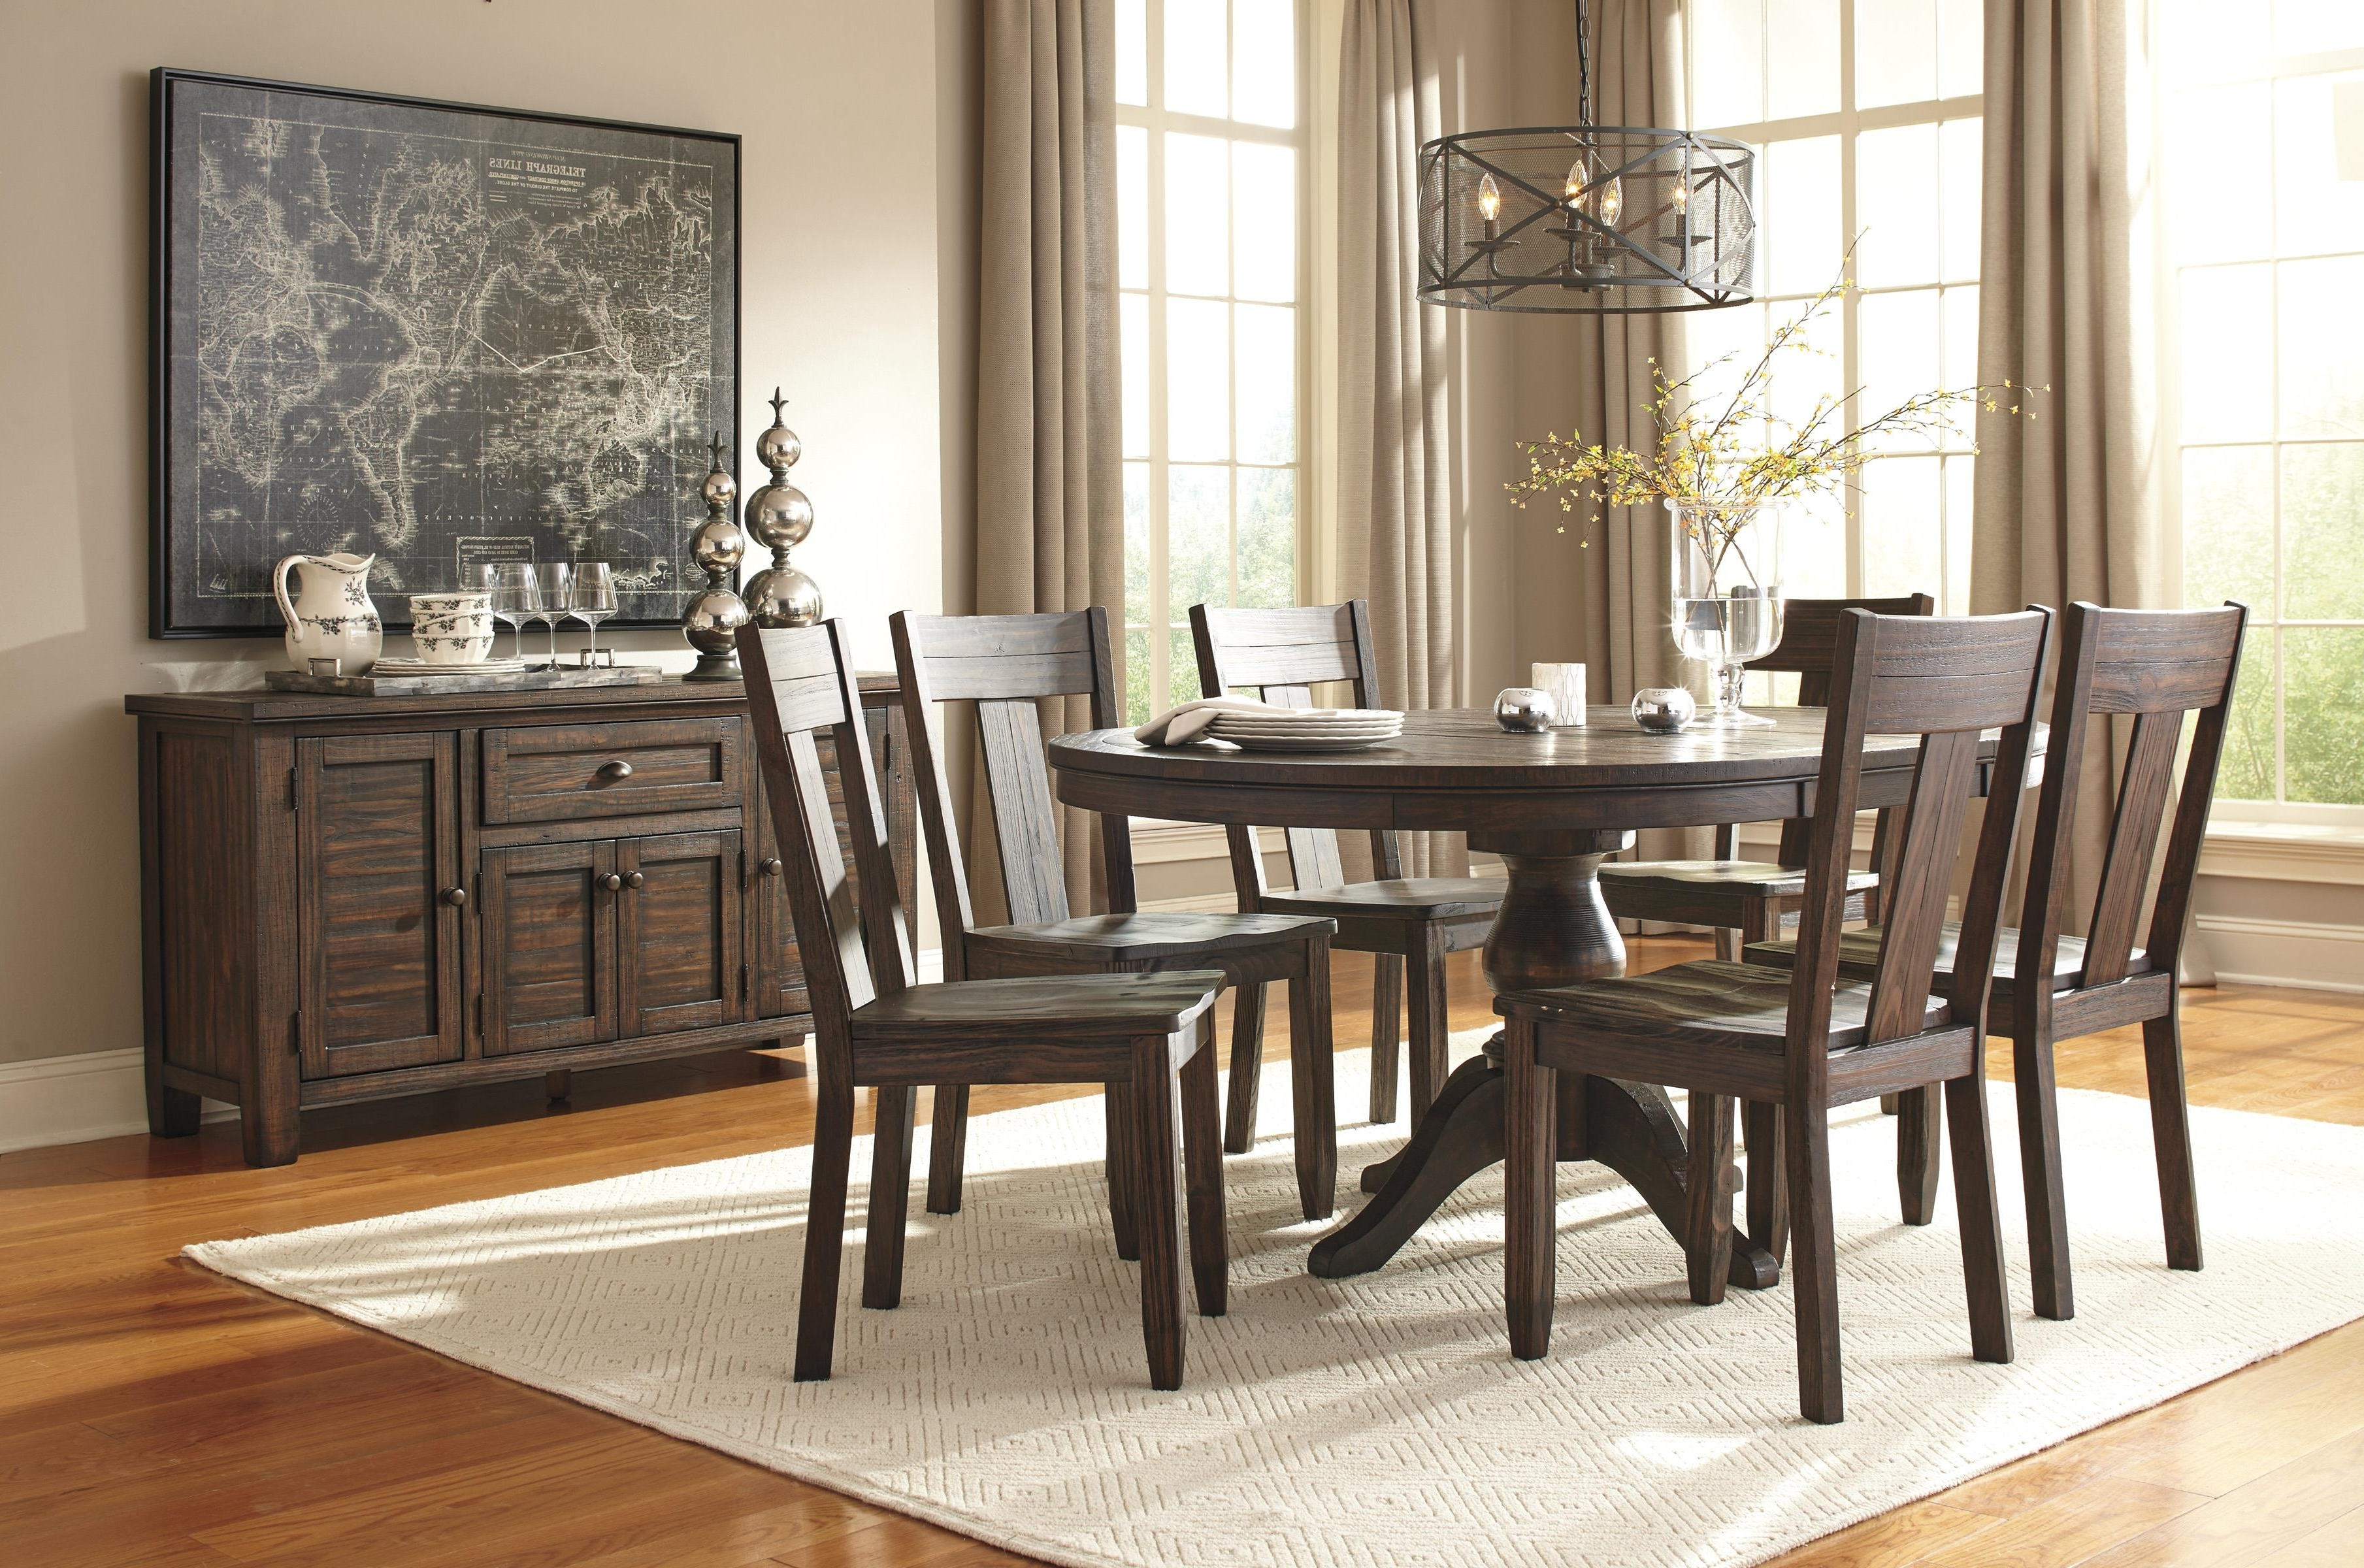 Fashionable Parquet 7 Piece Dining Sets Regarding 7 Piece Oval Dining Table Set With Wood Seat Side Chairs (View 21 of 25)